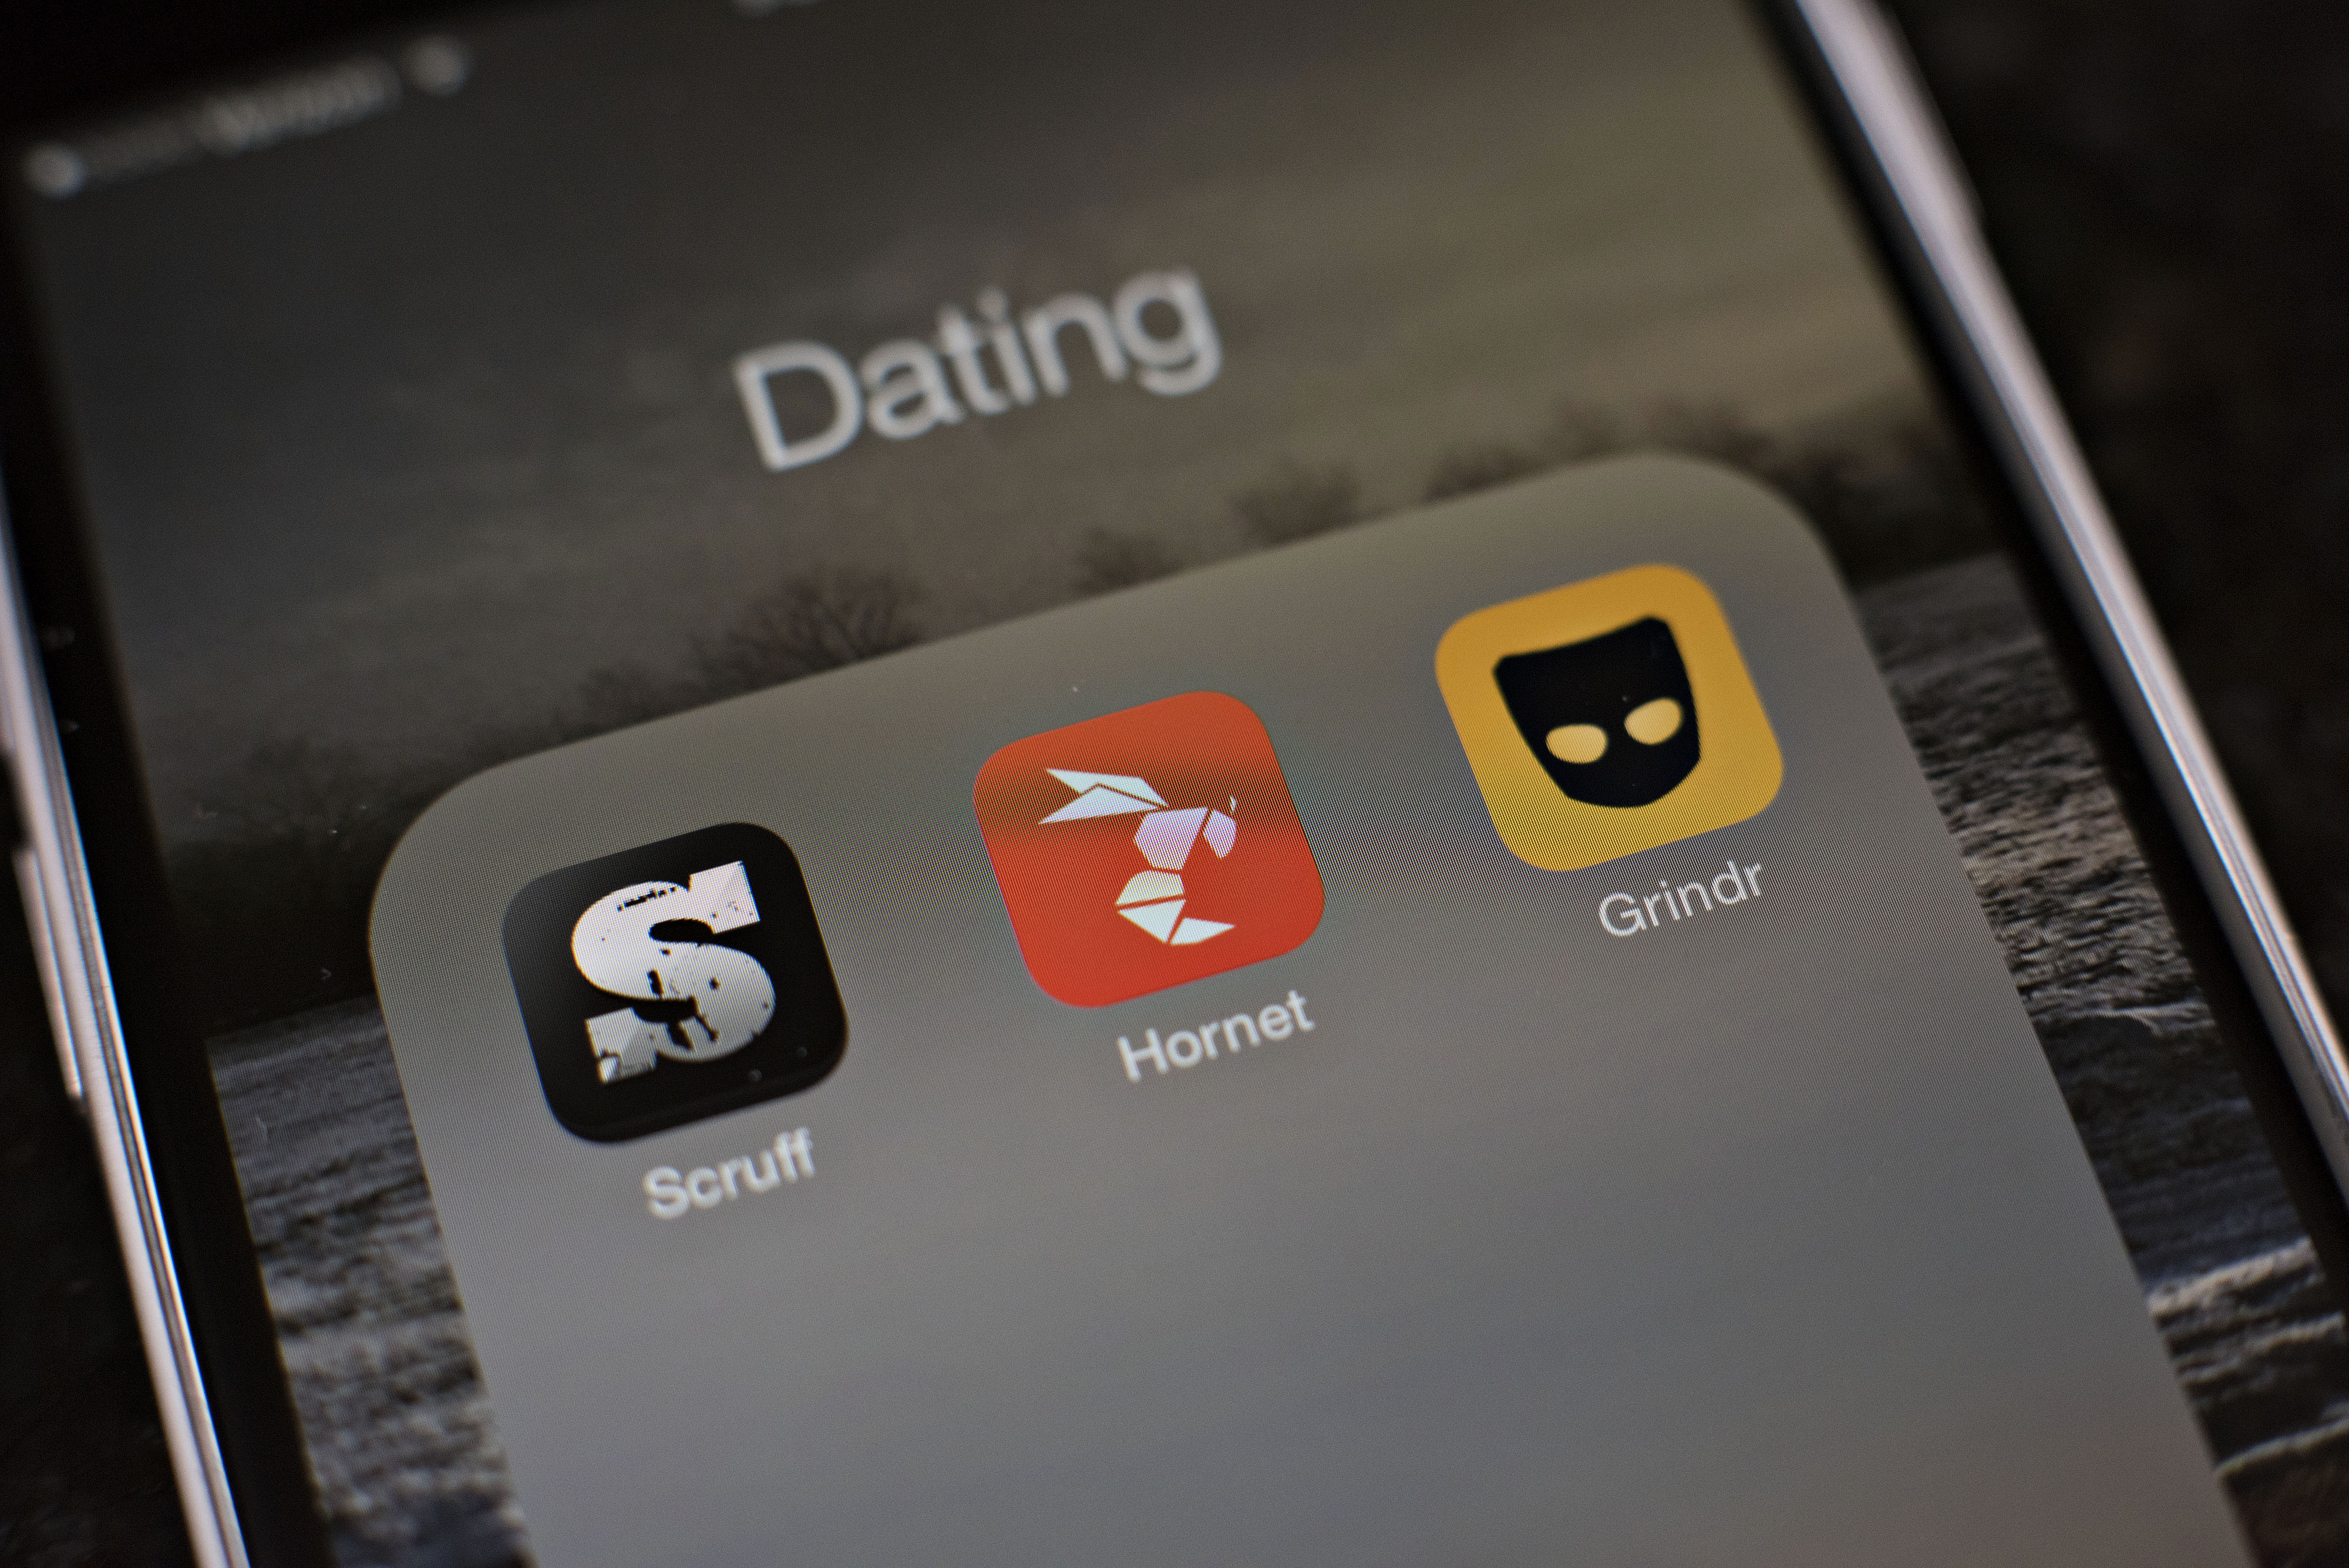 Gay-dating apps Scruff, Hornet and Grindr are displayed on an Apple iPhone